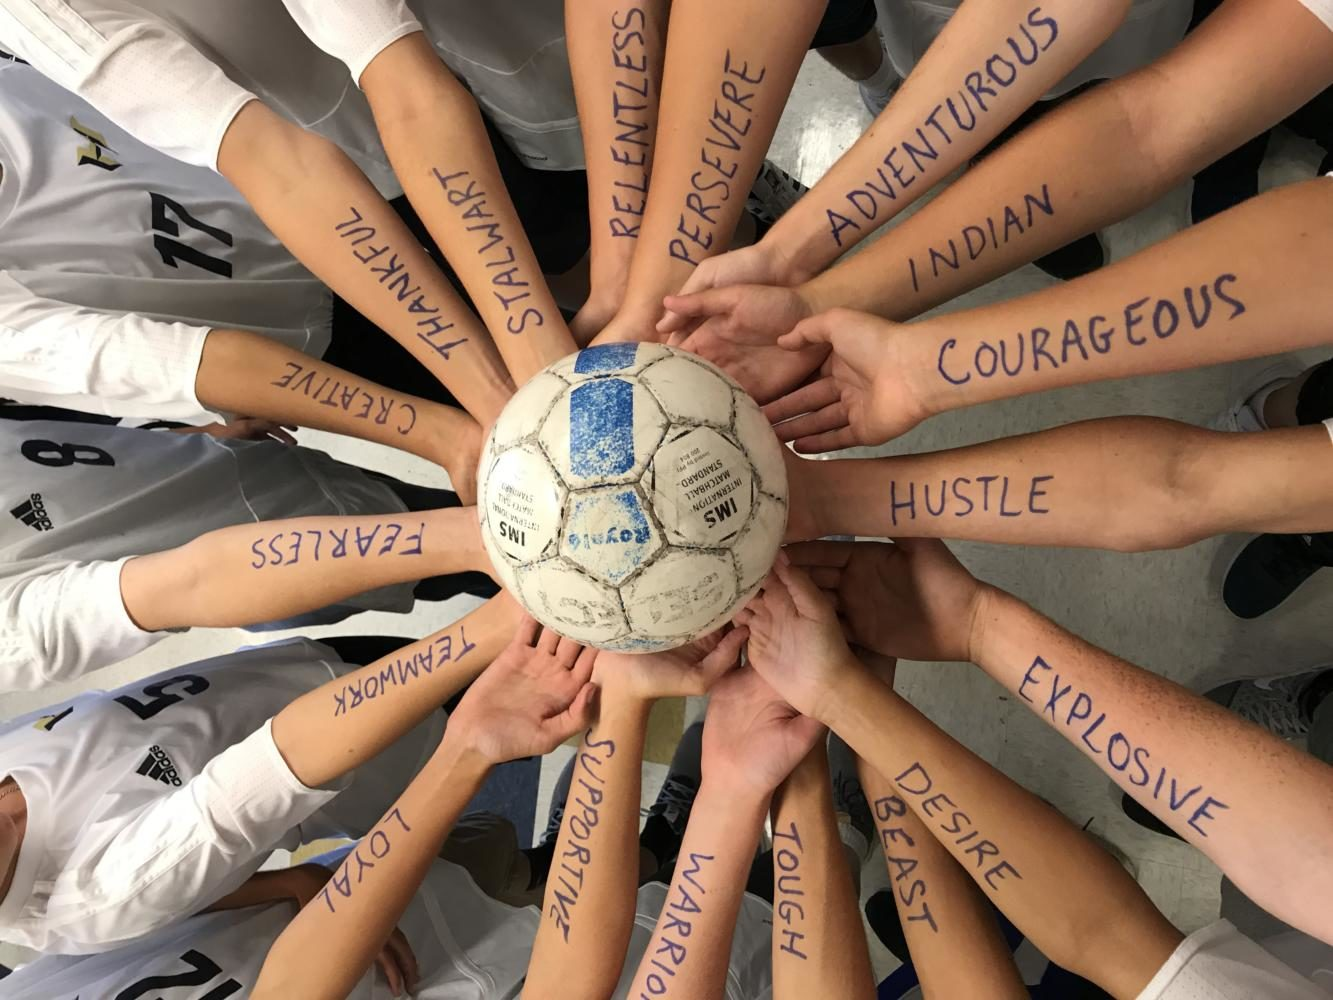 Inspired+by+the+words+on+their+arms%2C+the+freshman+soccer+team+comes+back+from+0-3+halftime+score.